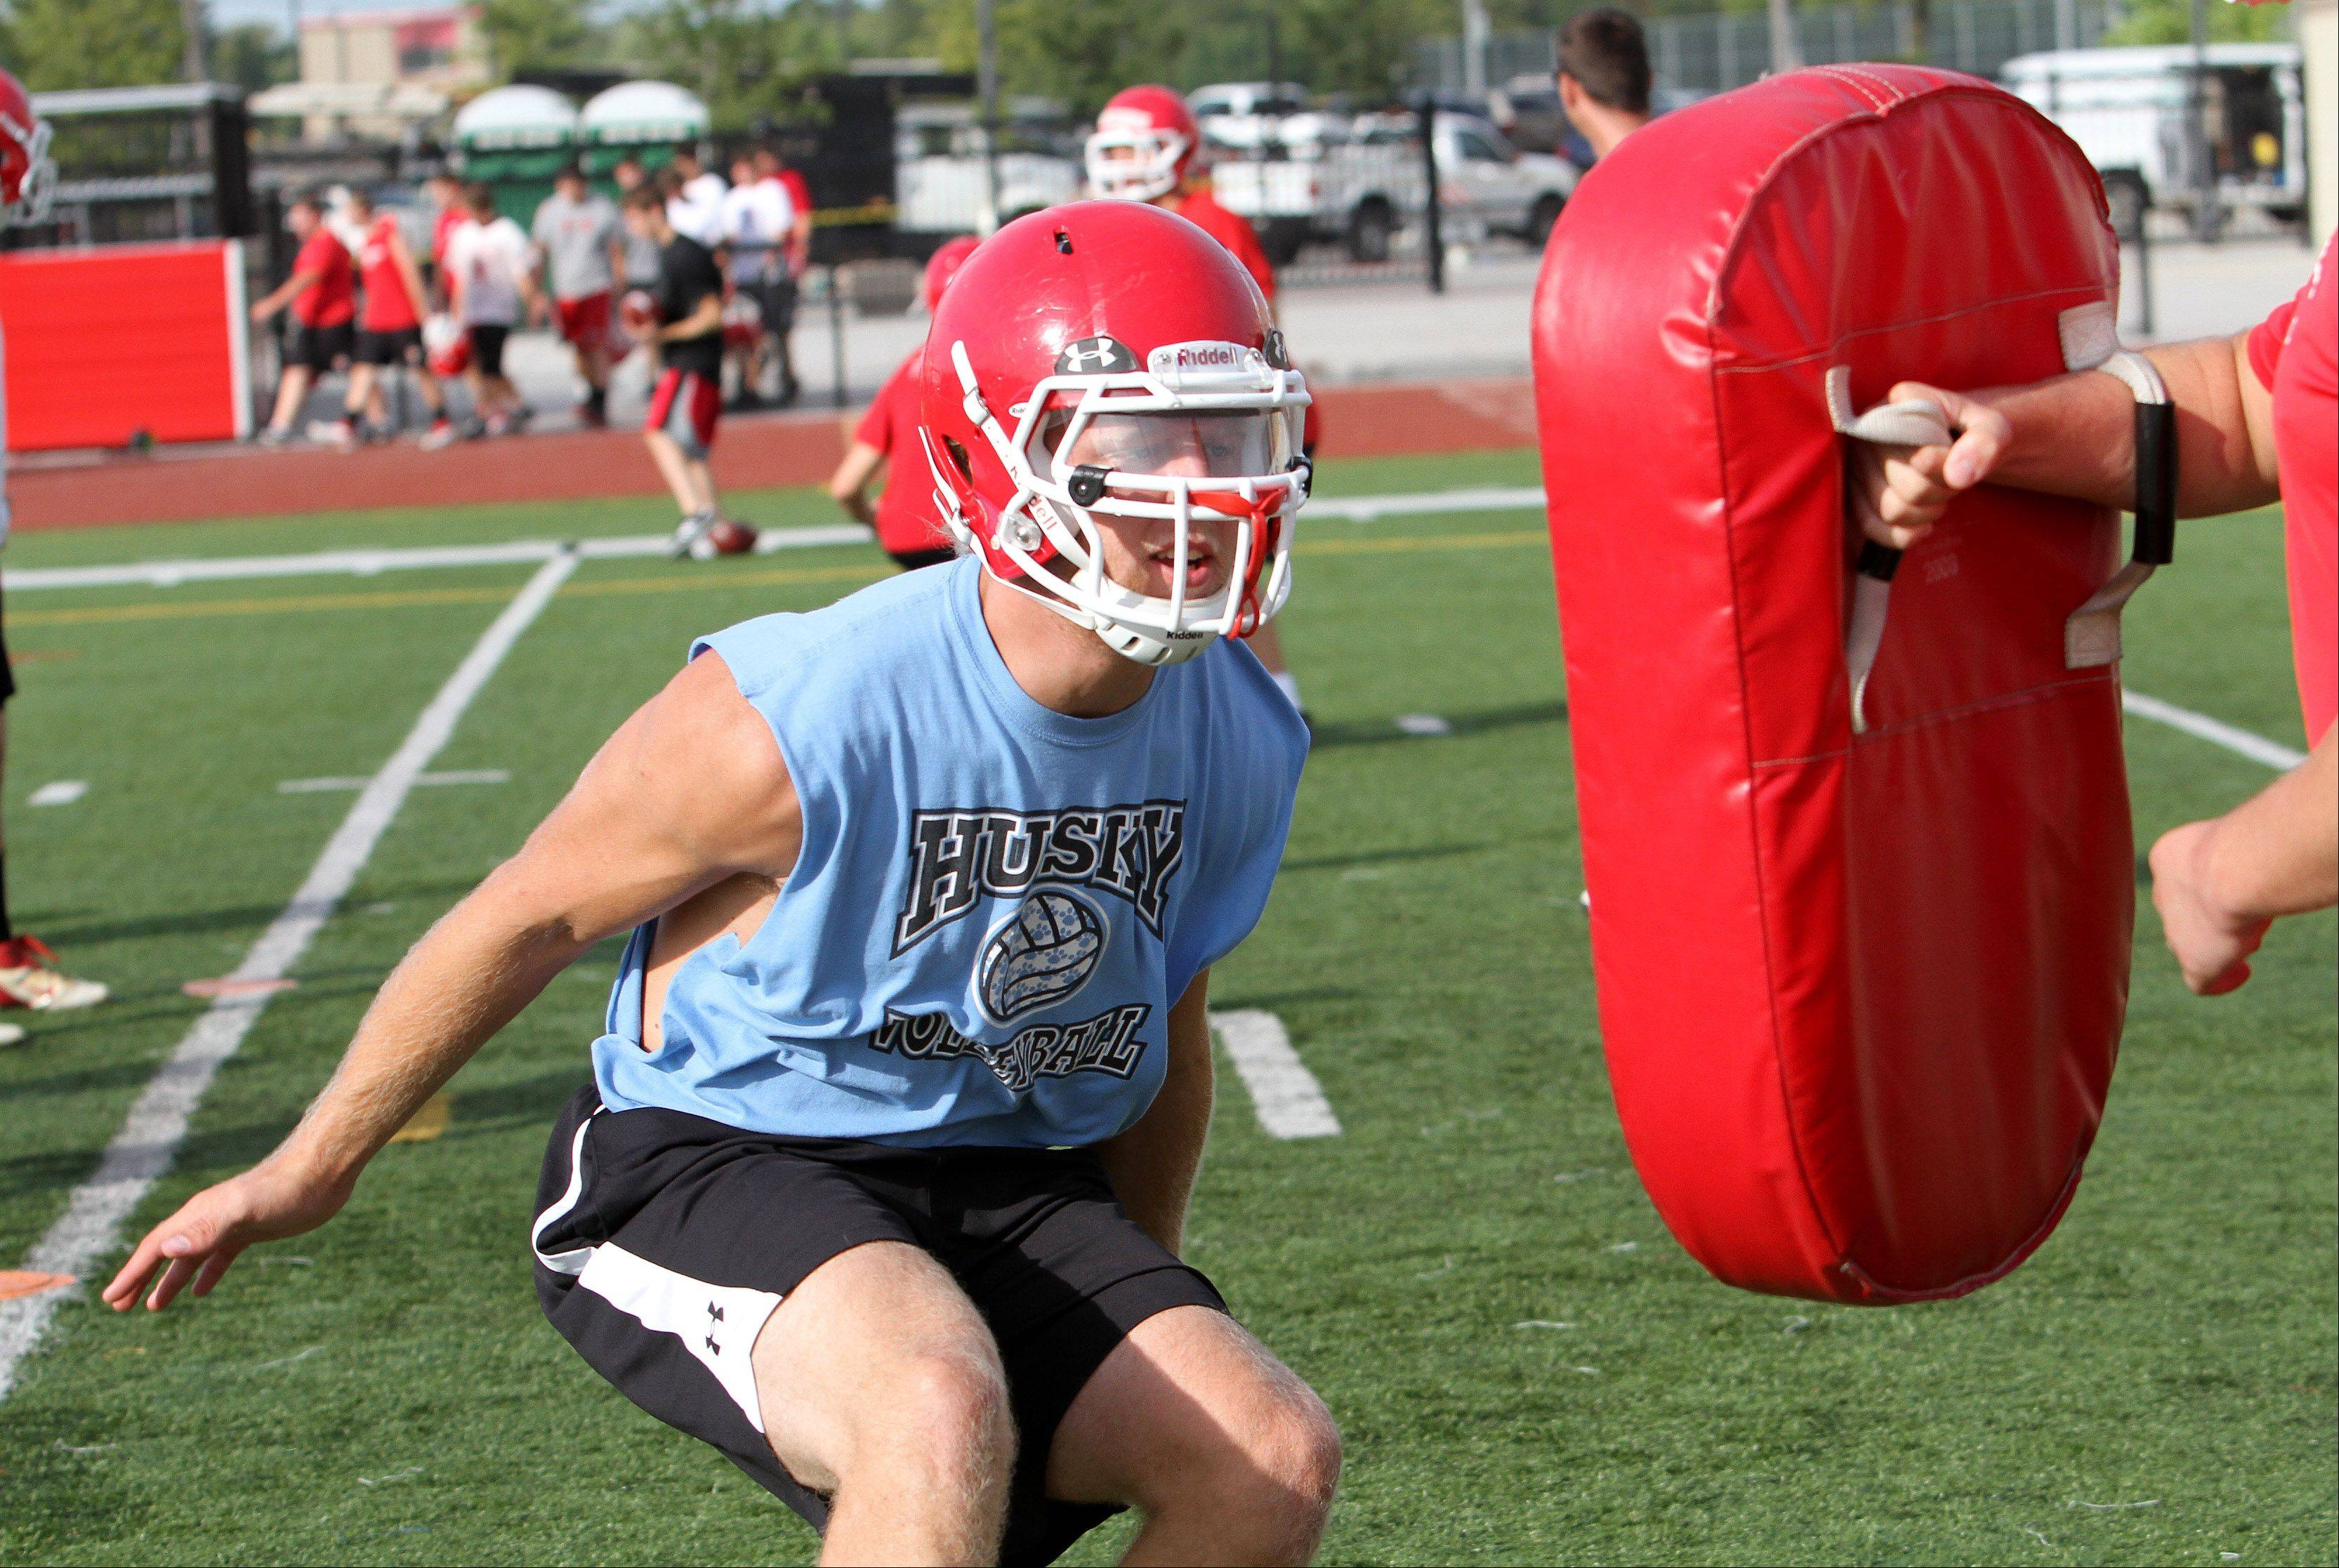 Cody Campbell practices at Naperville Central High School on Wednesday.